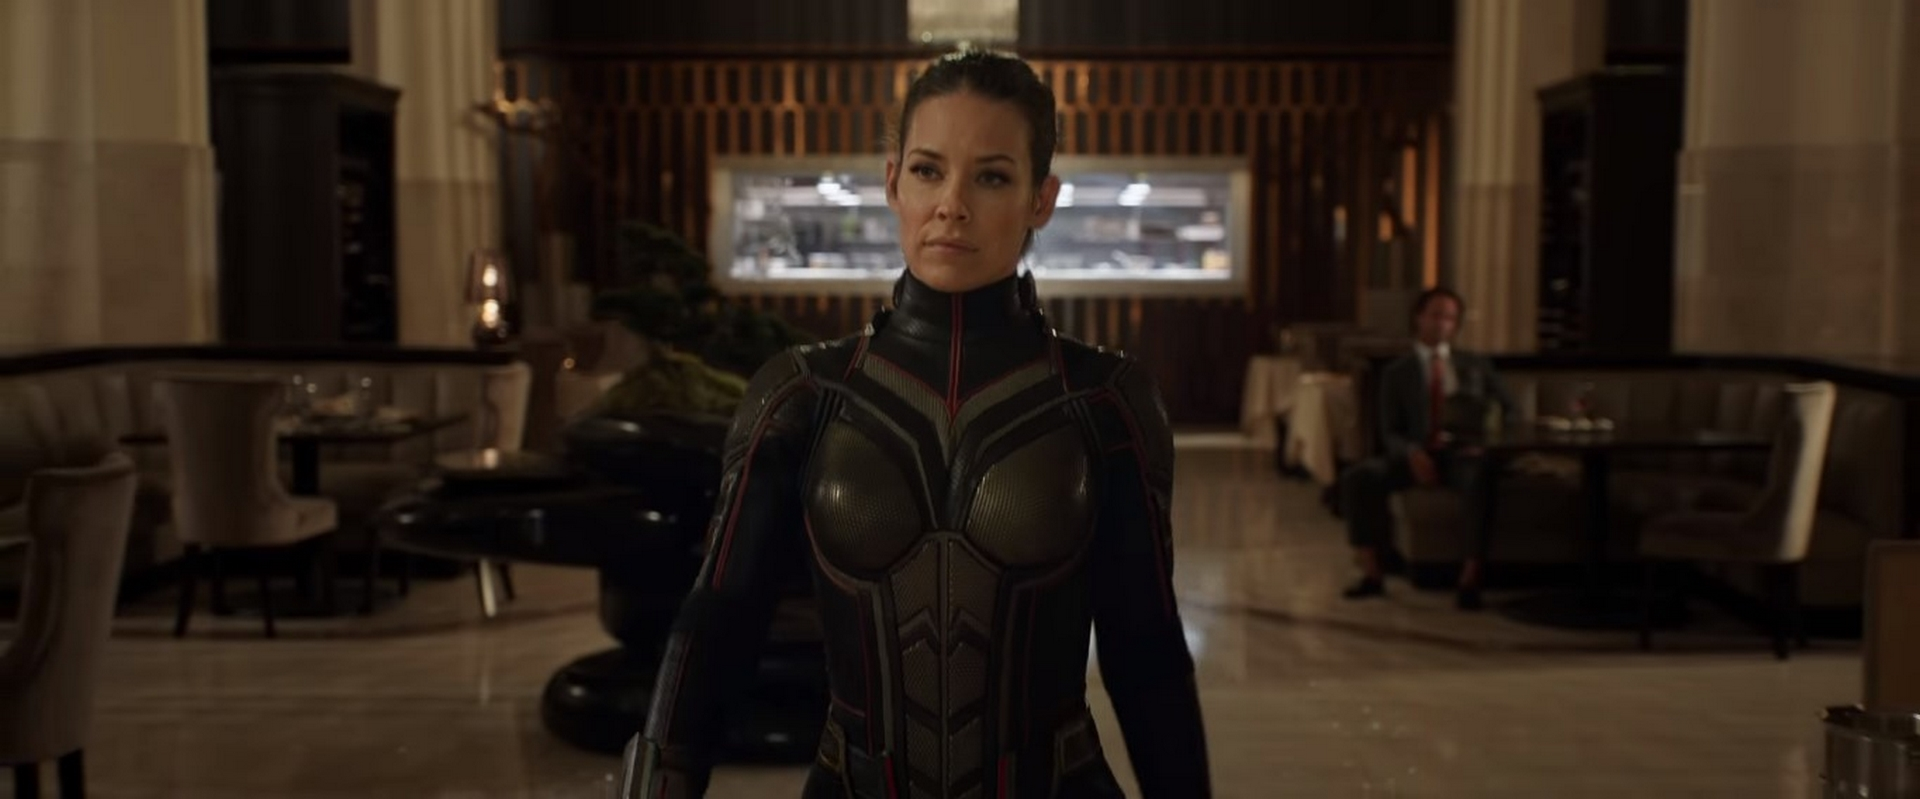 ART OF THE CUT with Ant-Man and the Wasp's Craig Wood, ACE 9